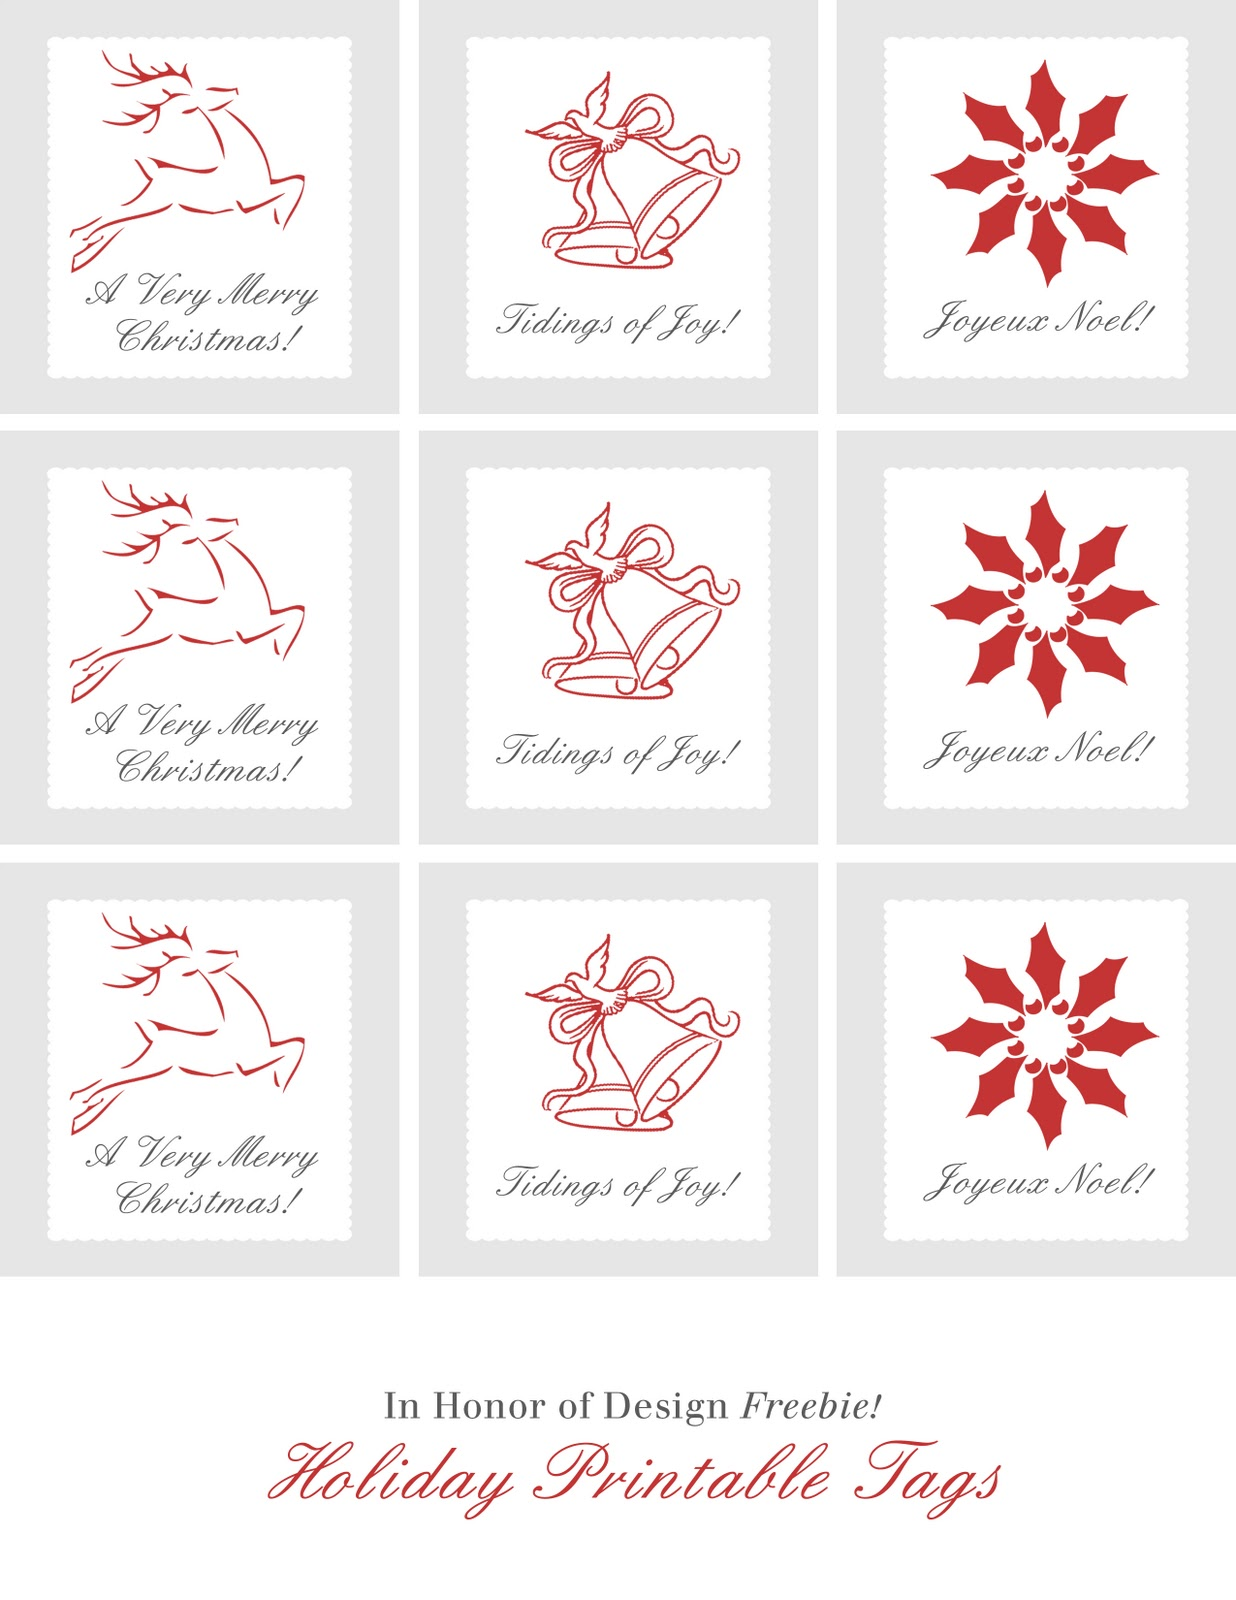 Free Printable Christmas Tags 1236 x 1600 230 kb jpeg, diy gift tags ...